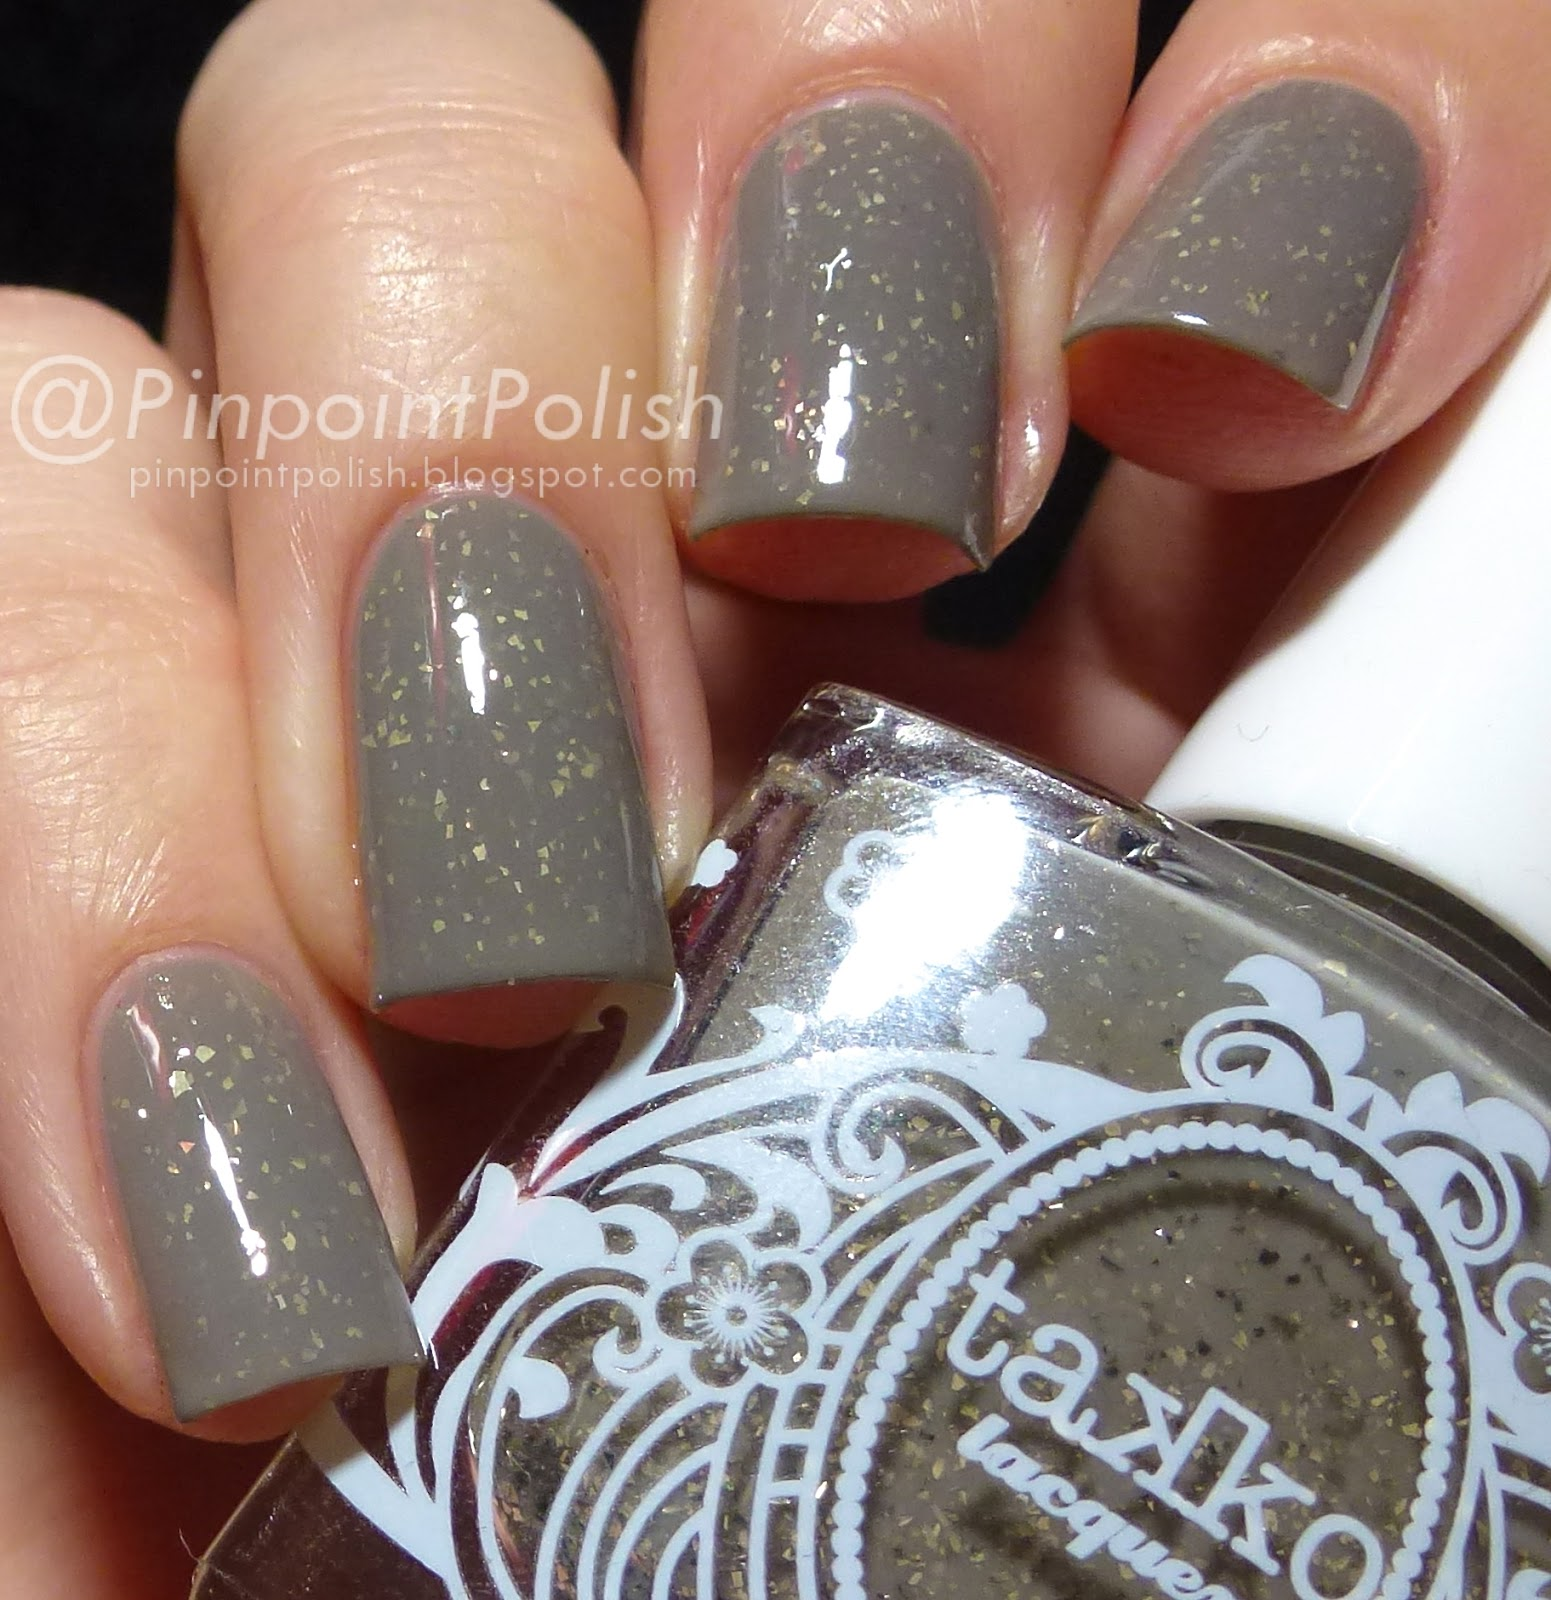 Takko lacquer, Physical graffiti, swatch